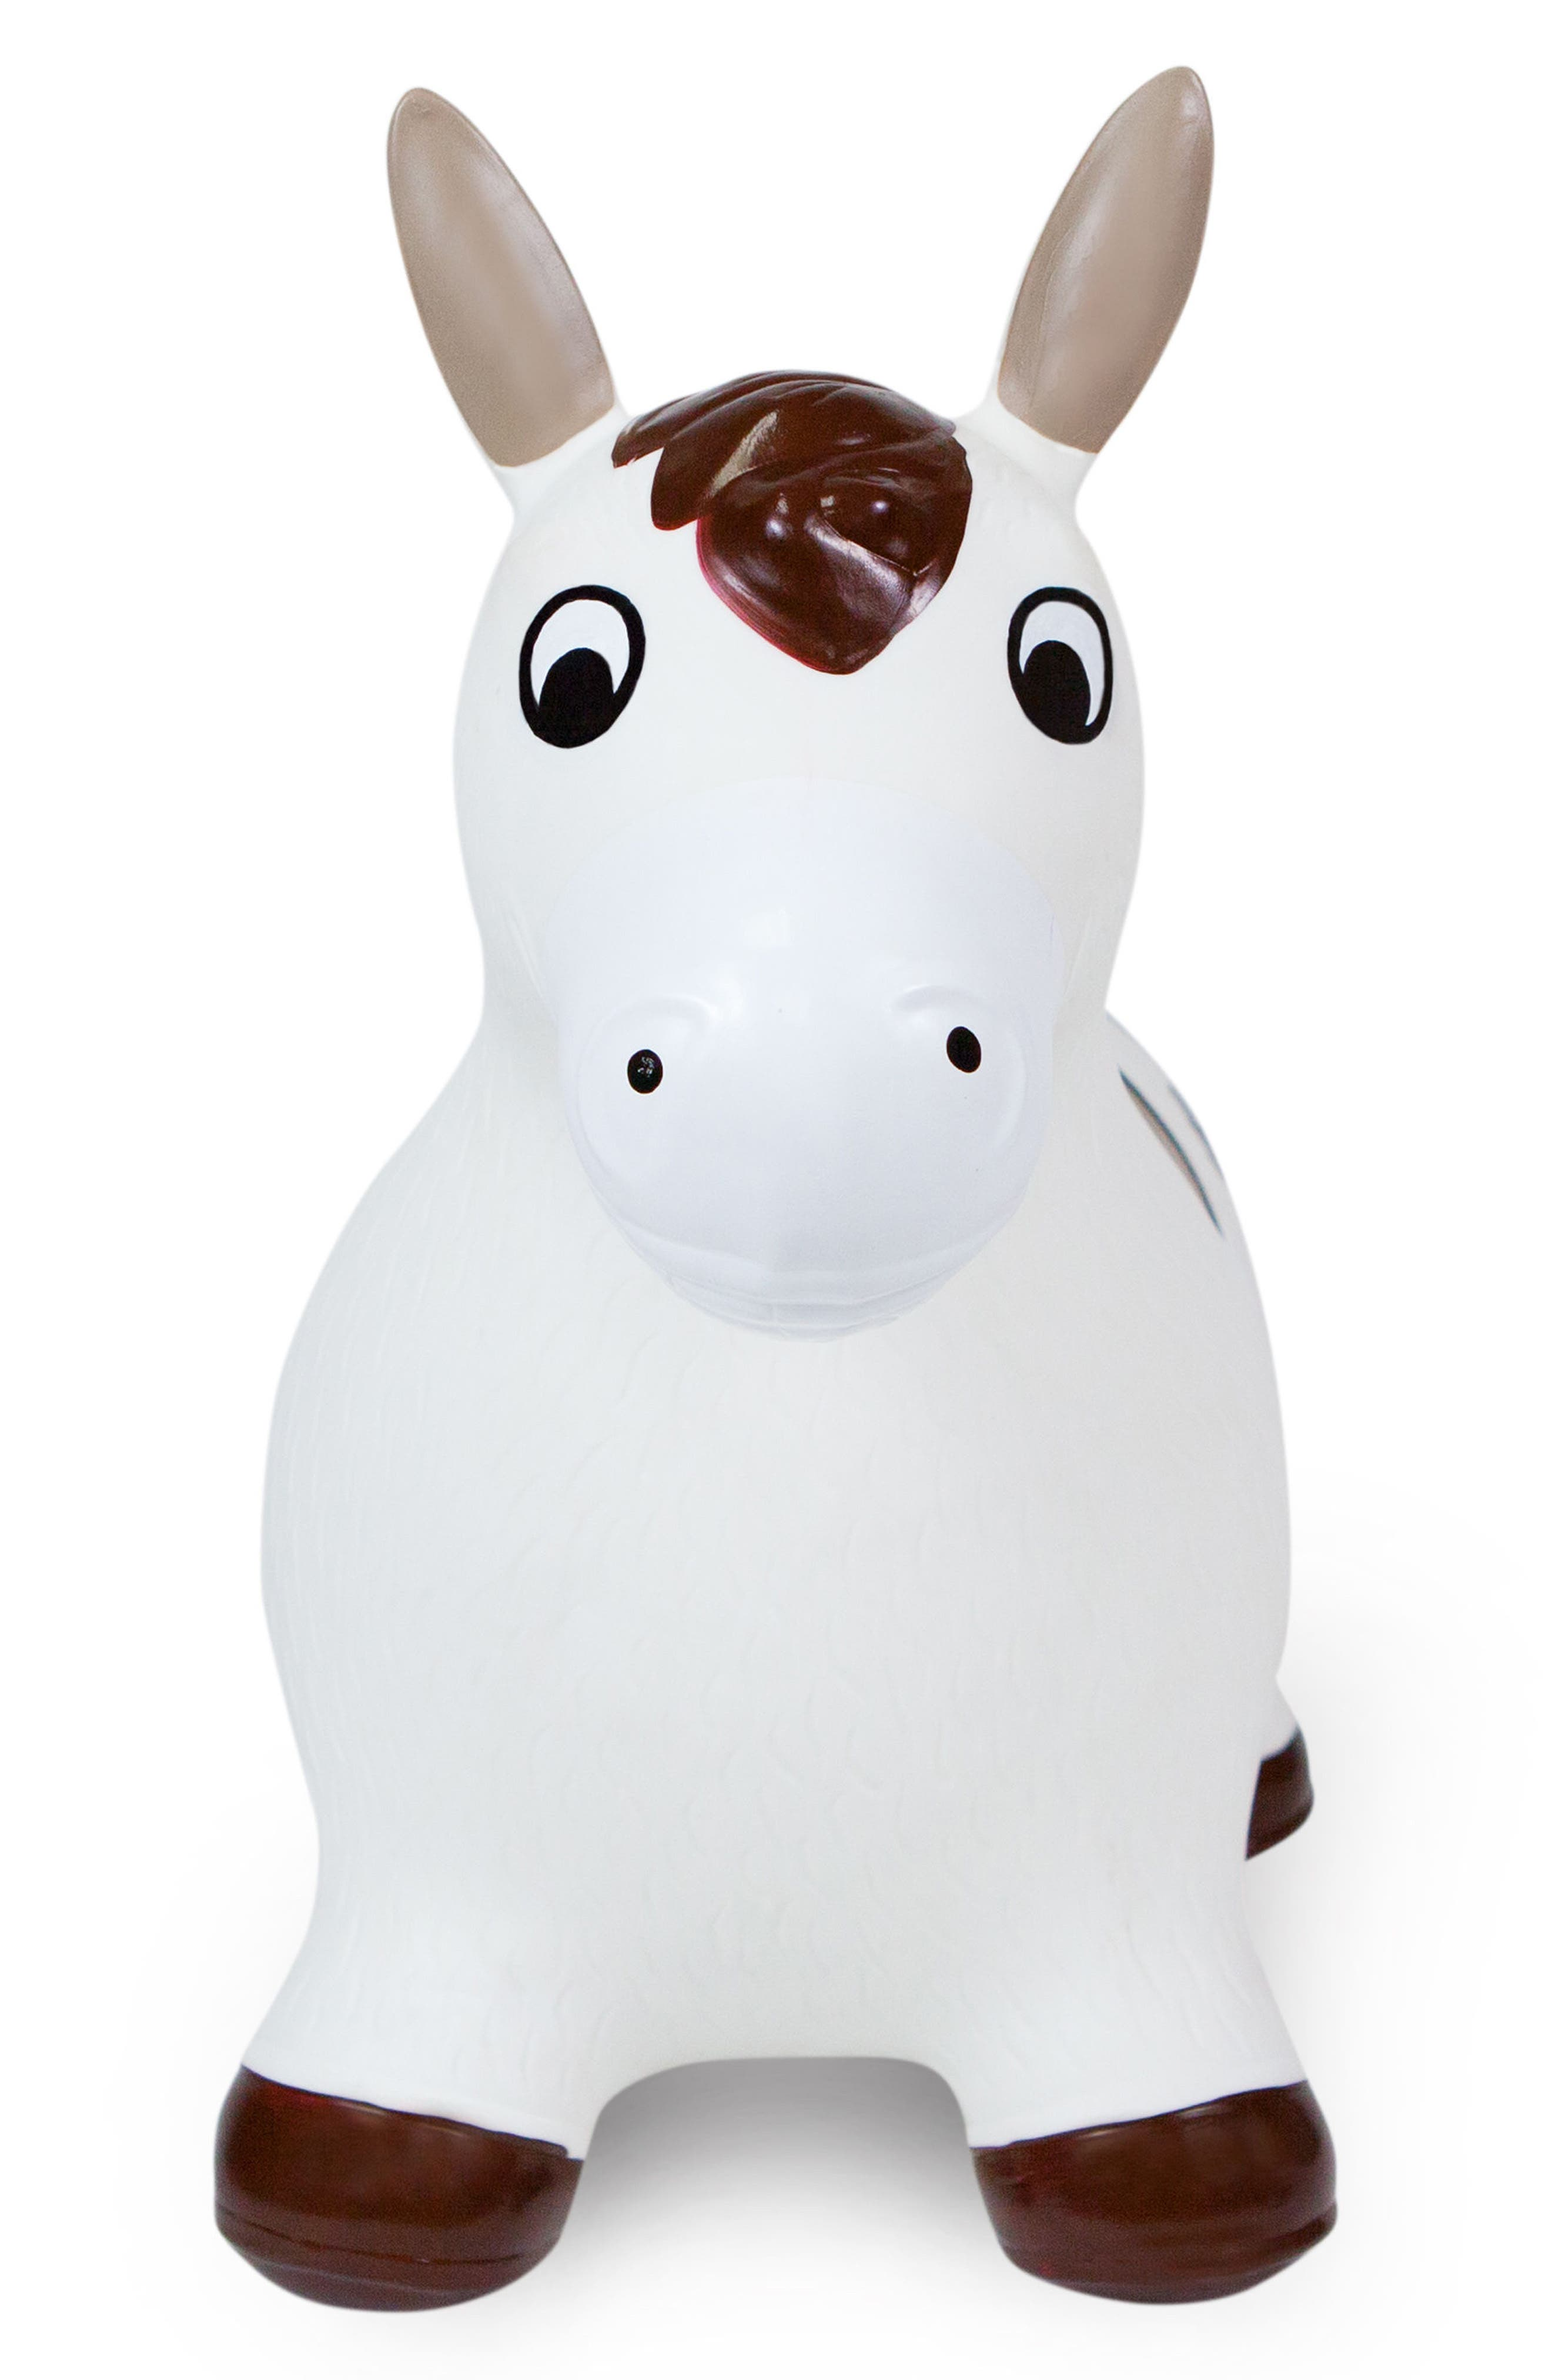 Lucky Bouncy Ride-On Horse Toy,                         Main,                         color, WHITE/ BROWN